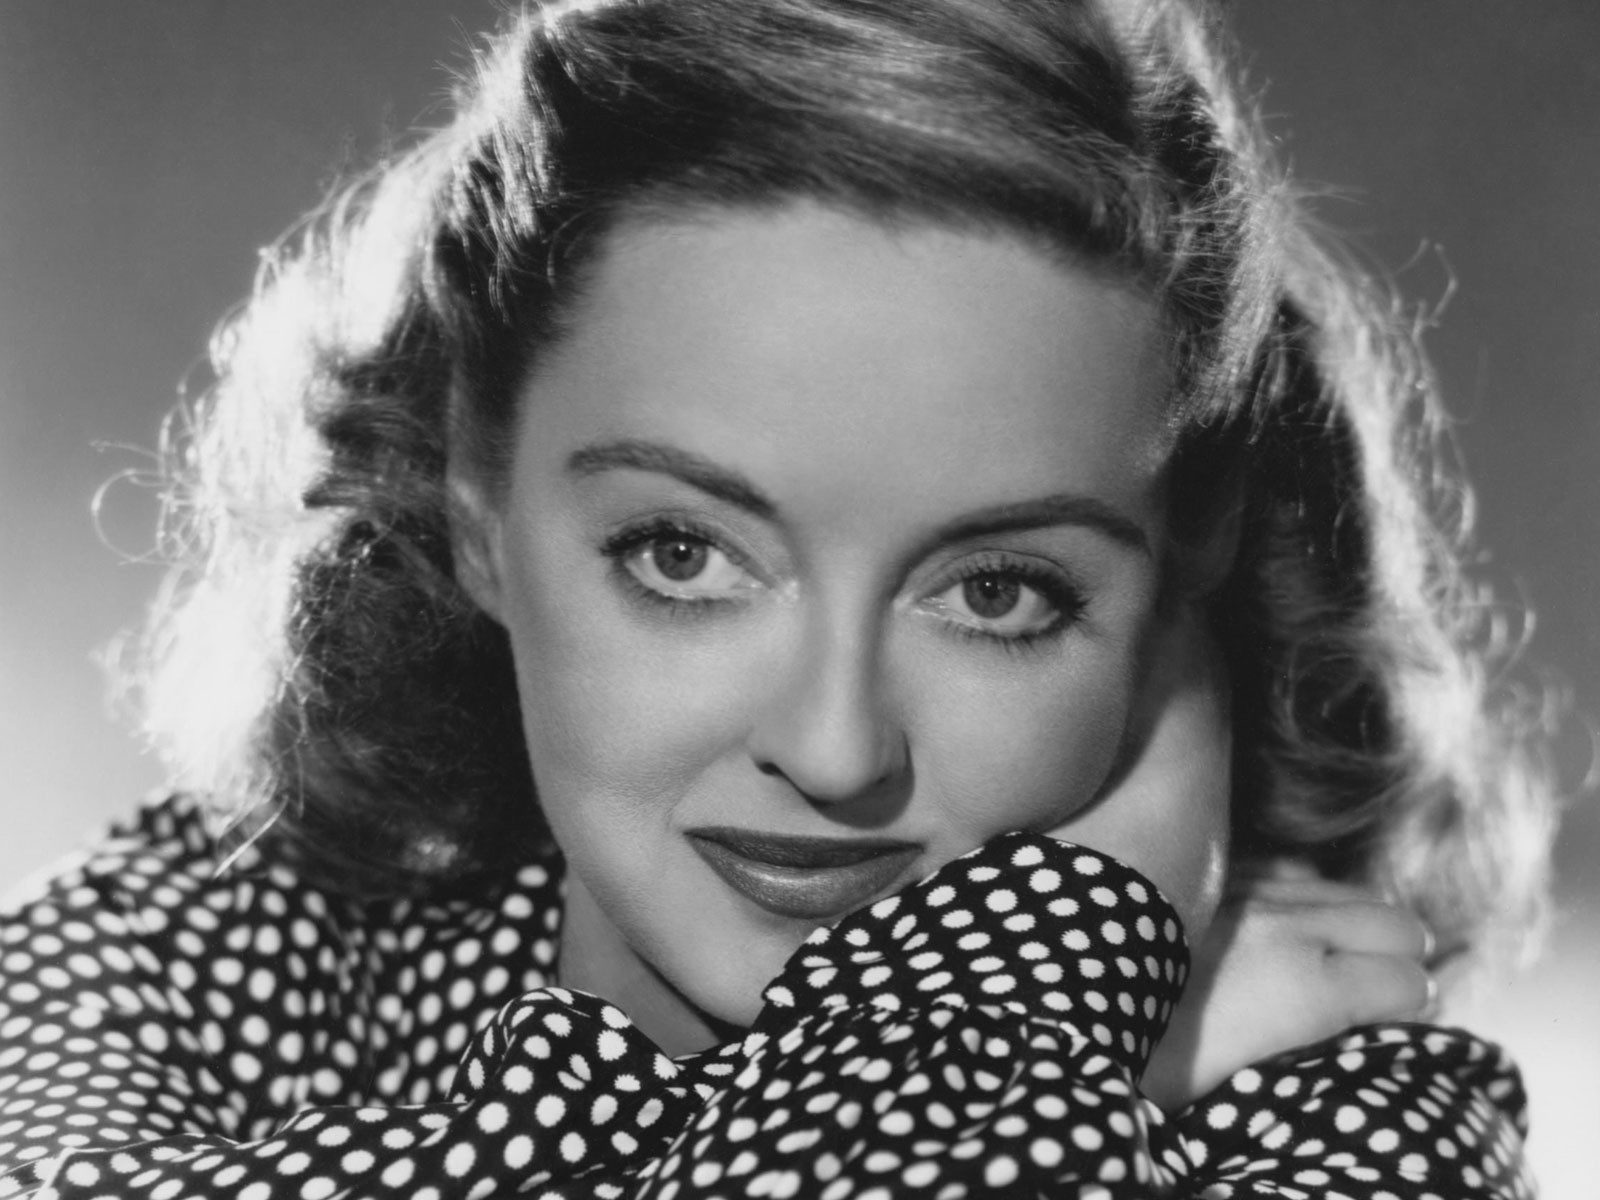 bette davis omaggio a 25 anni dalla morte female world il blog delle donne. Black Bedroom Furniture Sets. Home Design Ideas